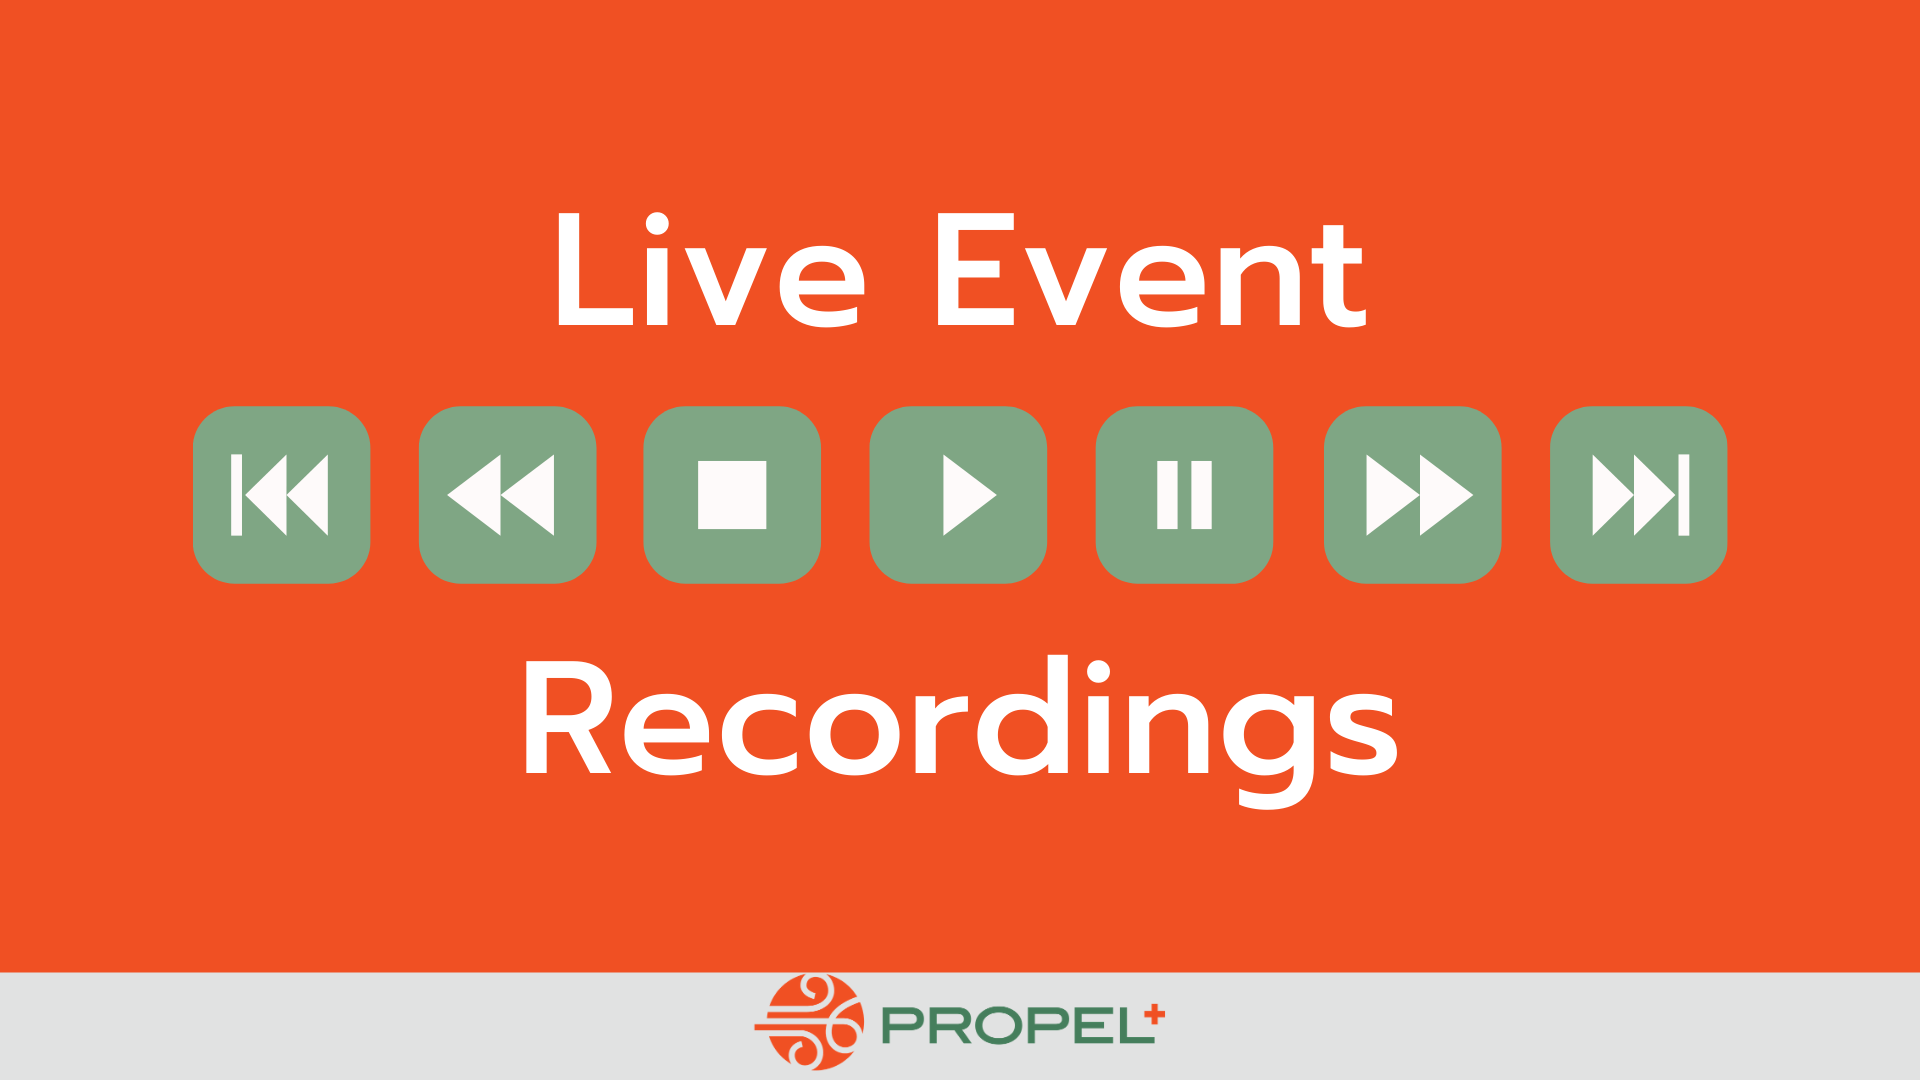 Live Event Recordings